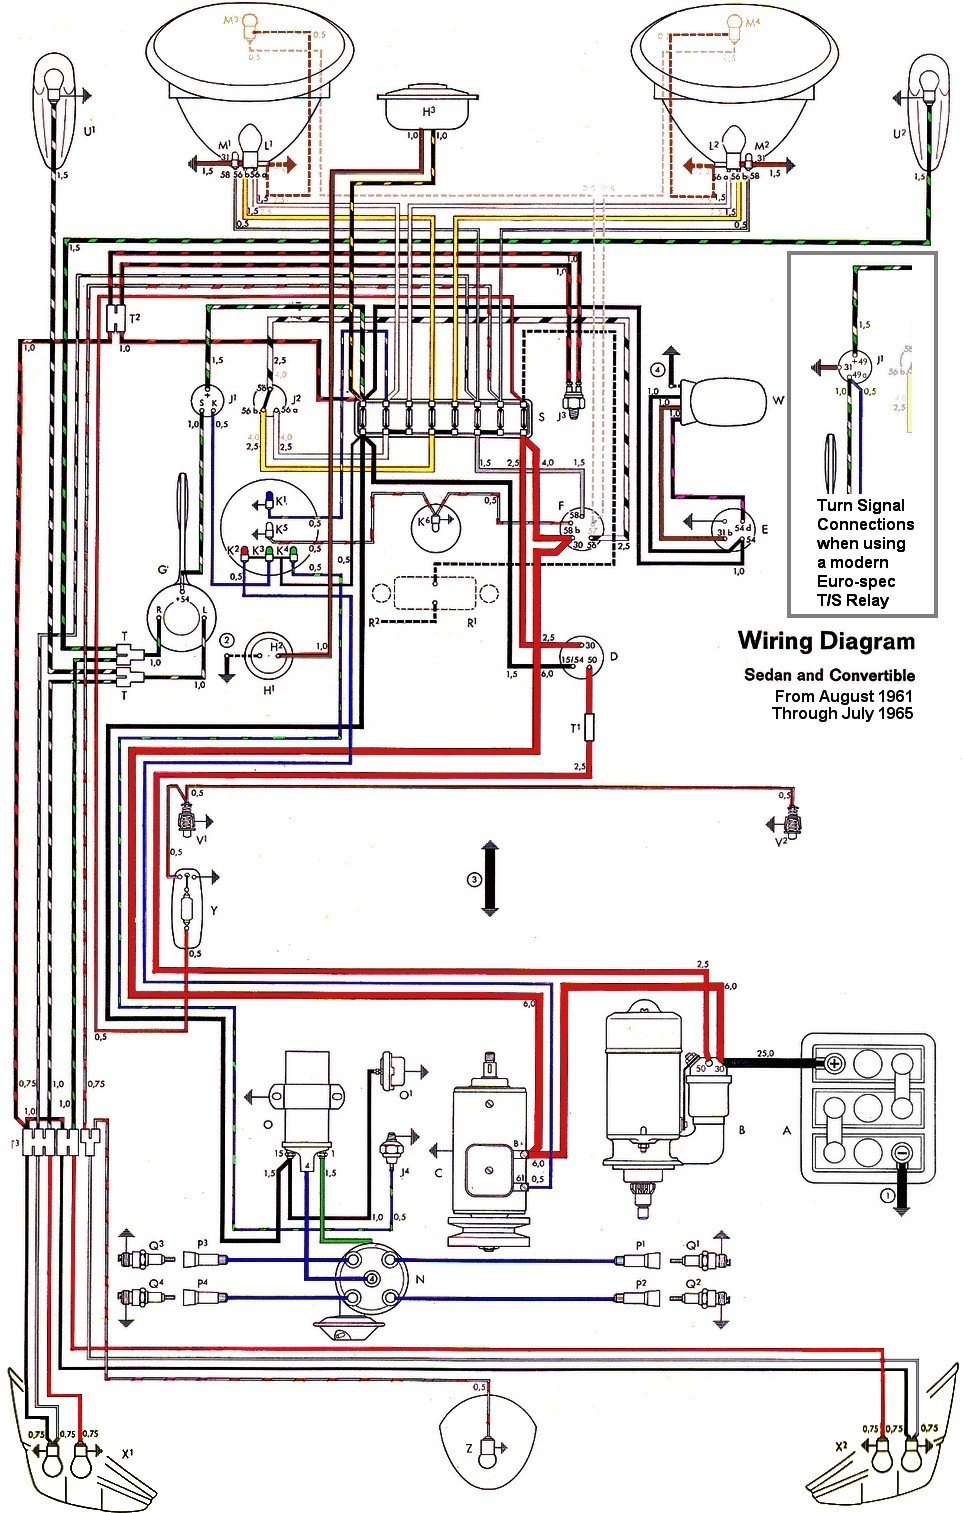 bug_62 65withinset thesamba com type 1 wiring diagrams vw beetle wiring diagram at readyjetset.co